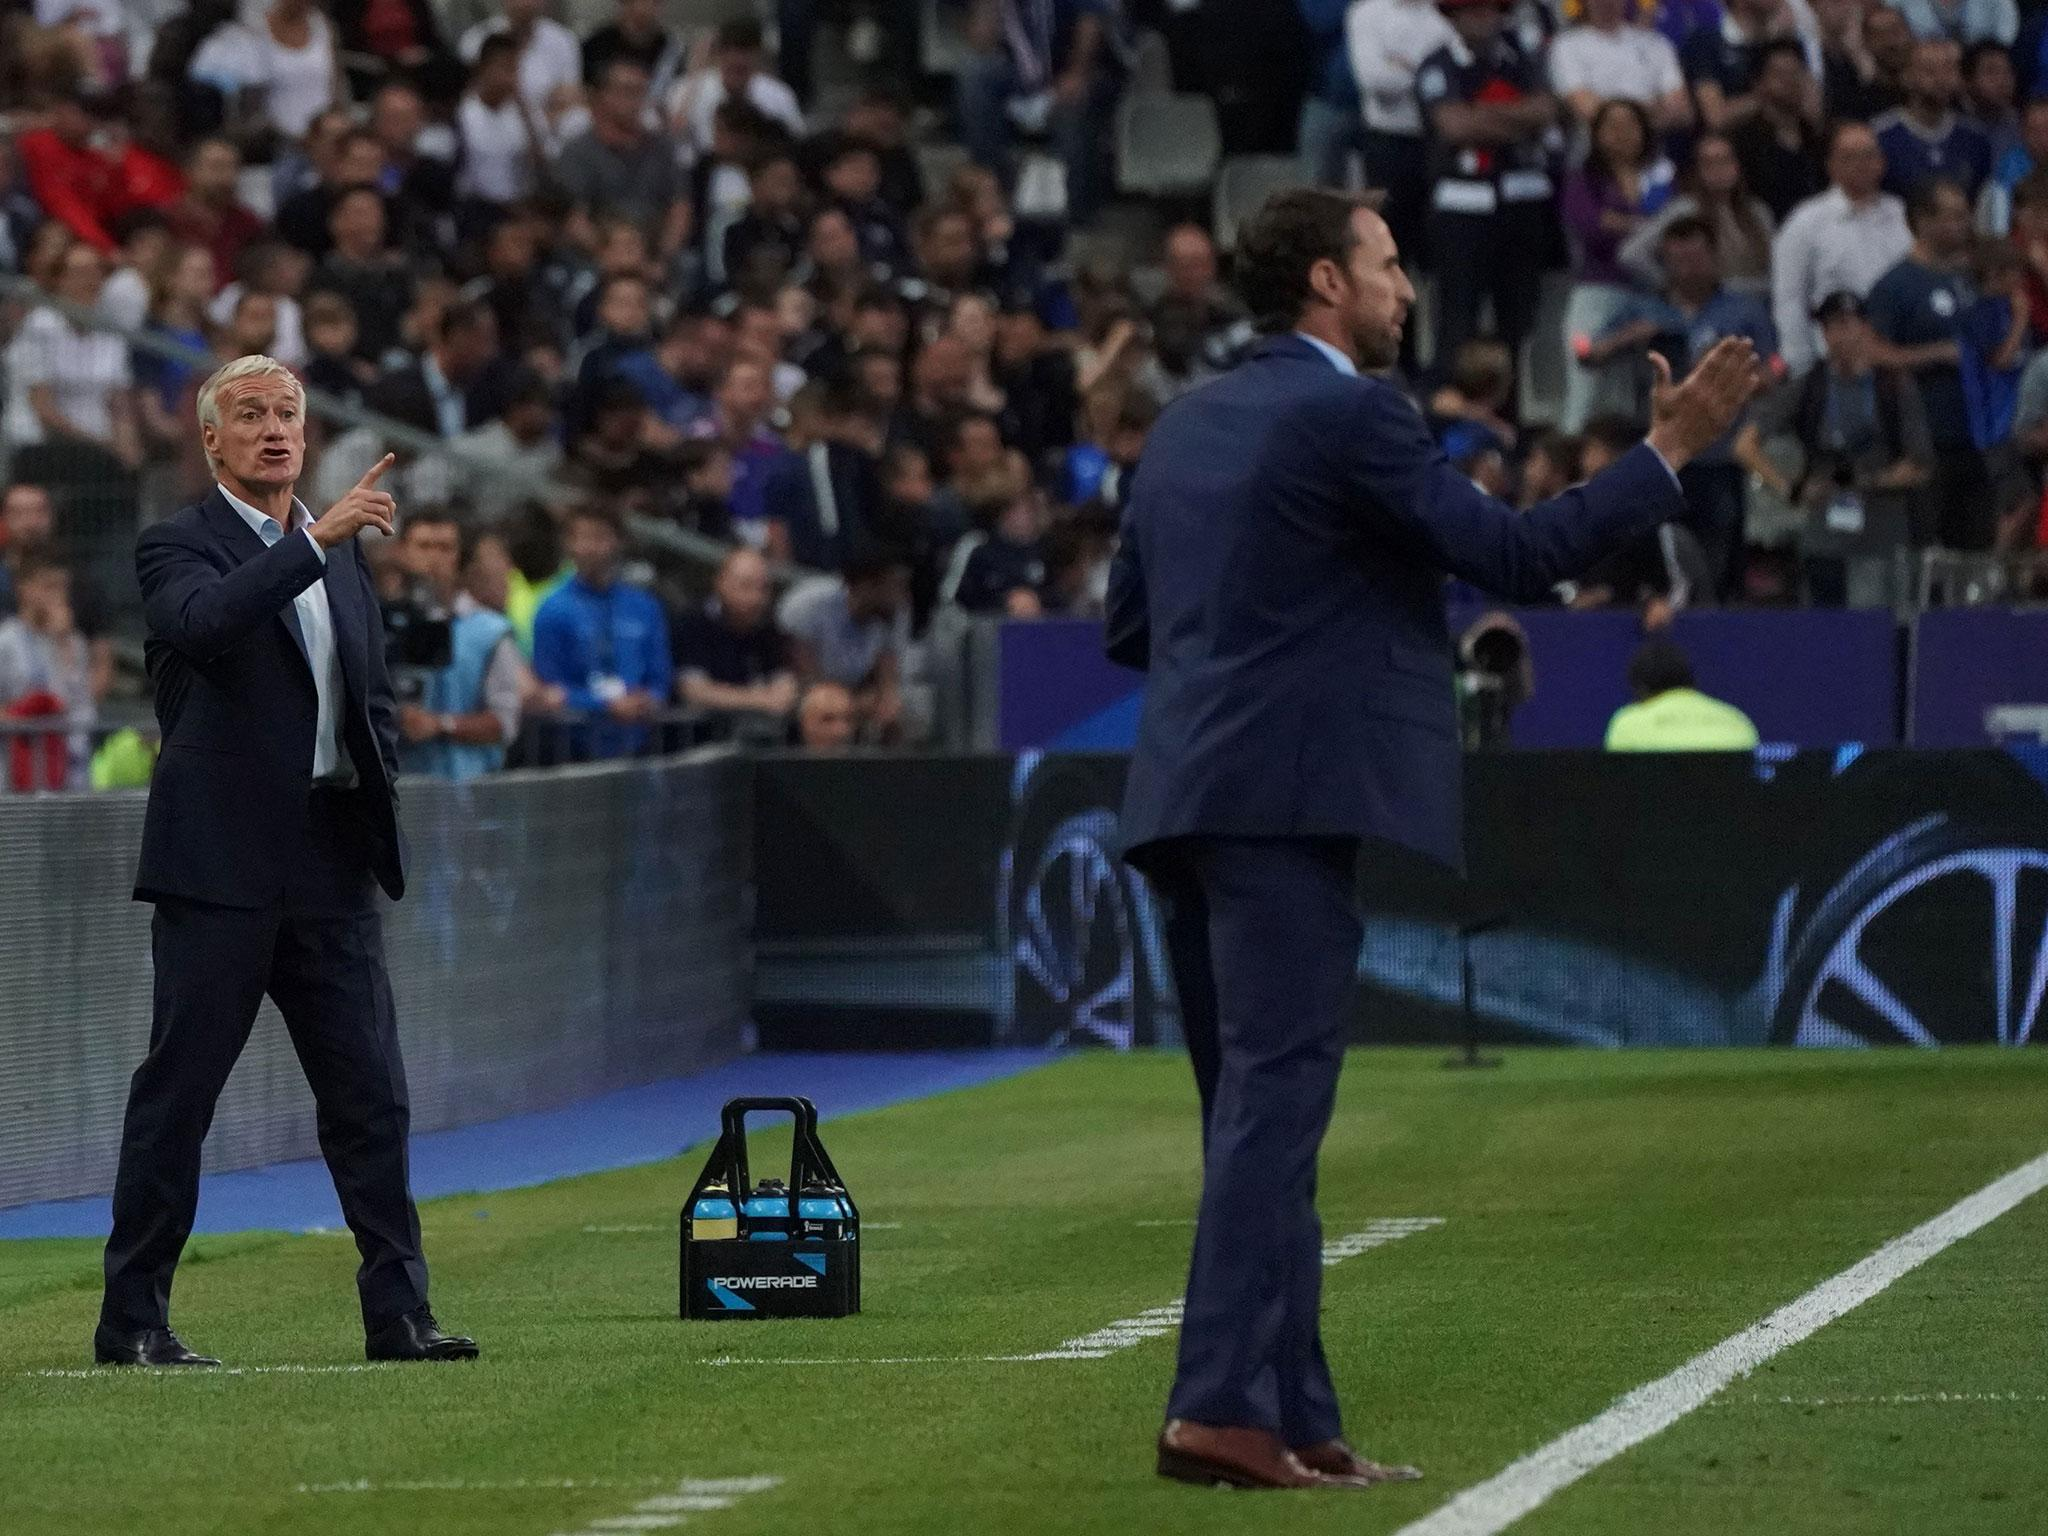 Didier Deschamps remains France's weakest link but it's a very different story for Gareth Southgate and England